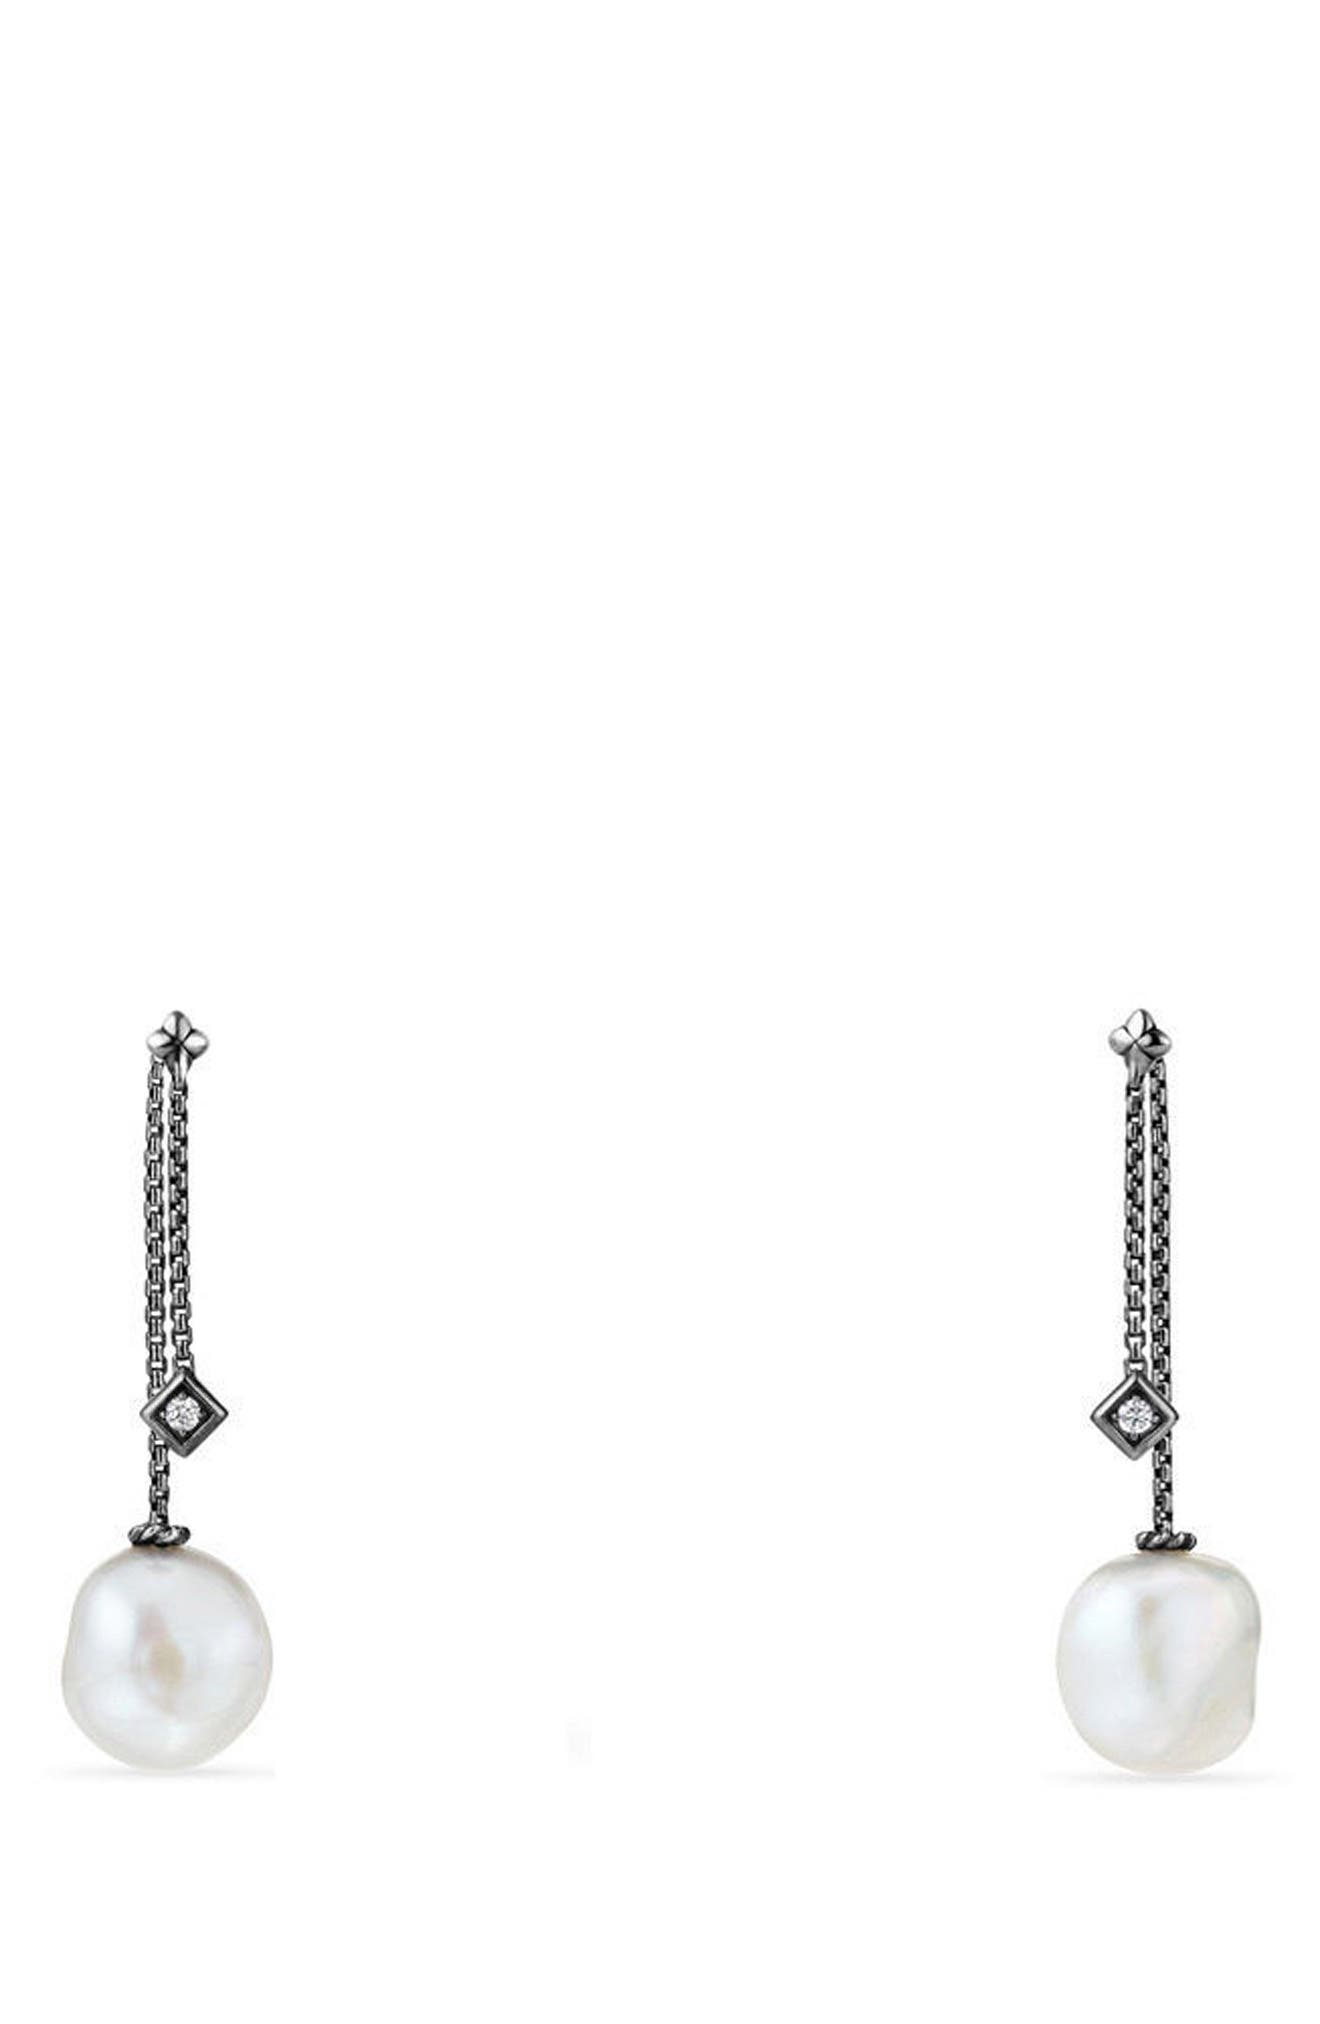 DAVID YURMAN Solari Pearl & Diamond Drop Earrings